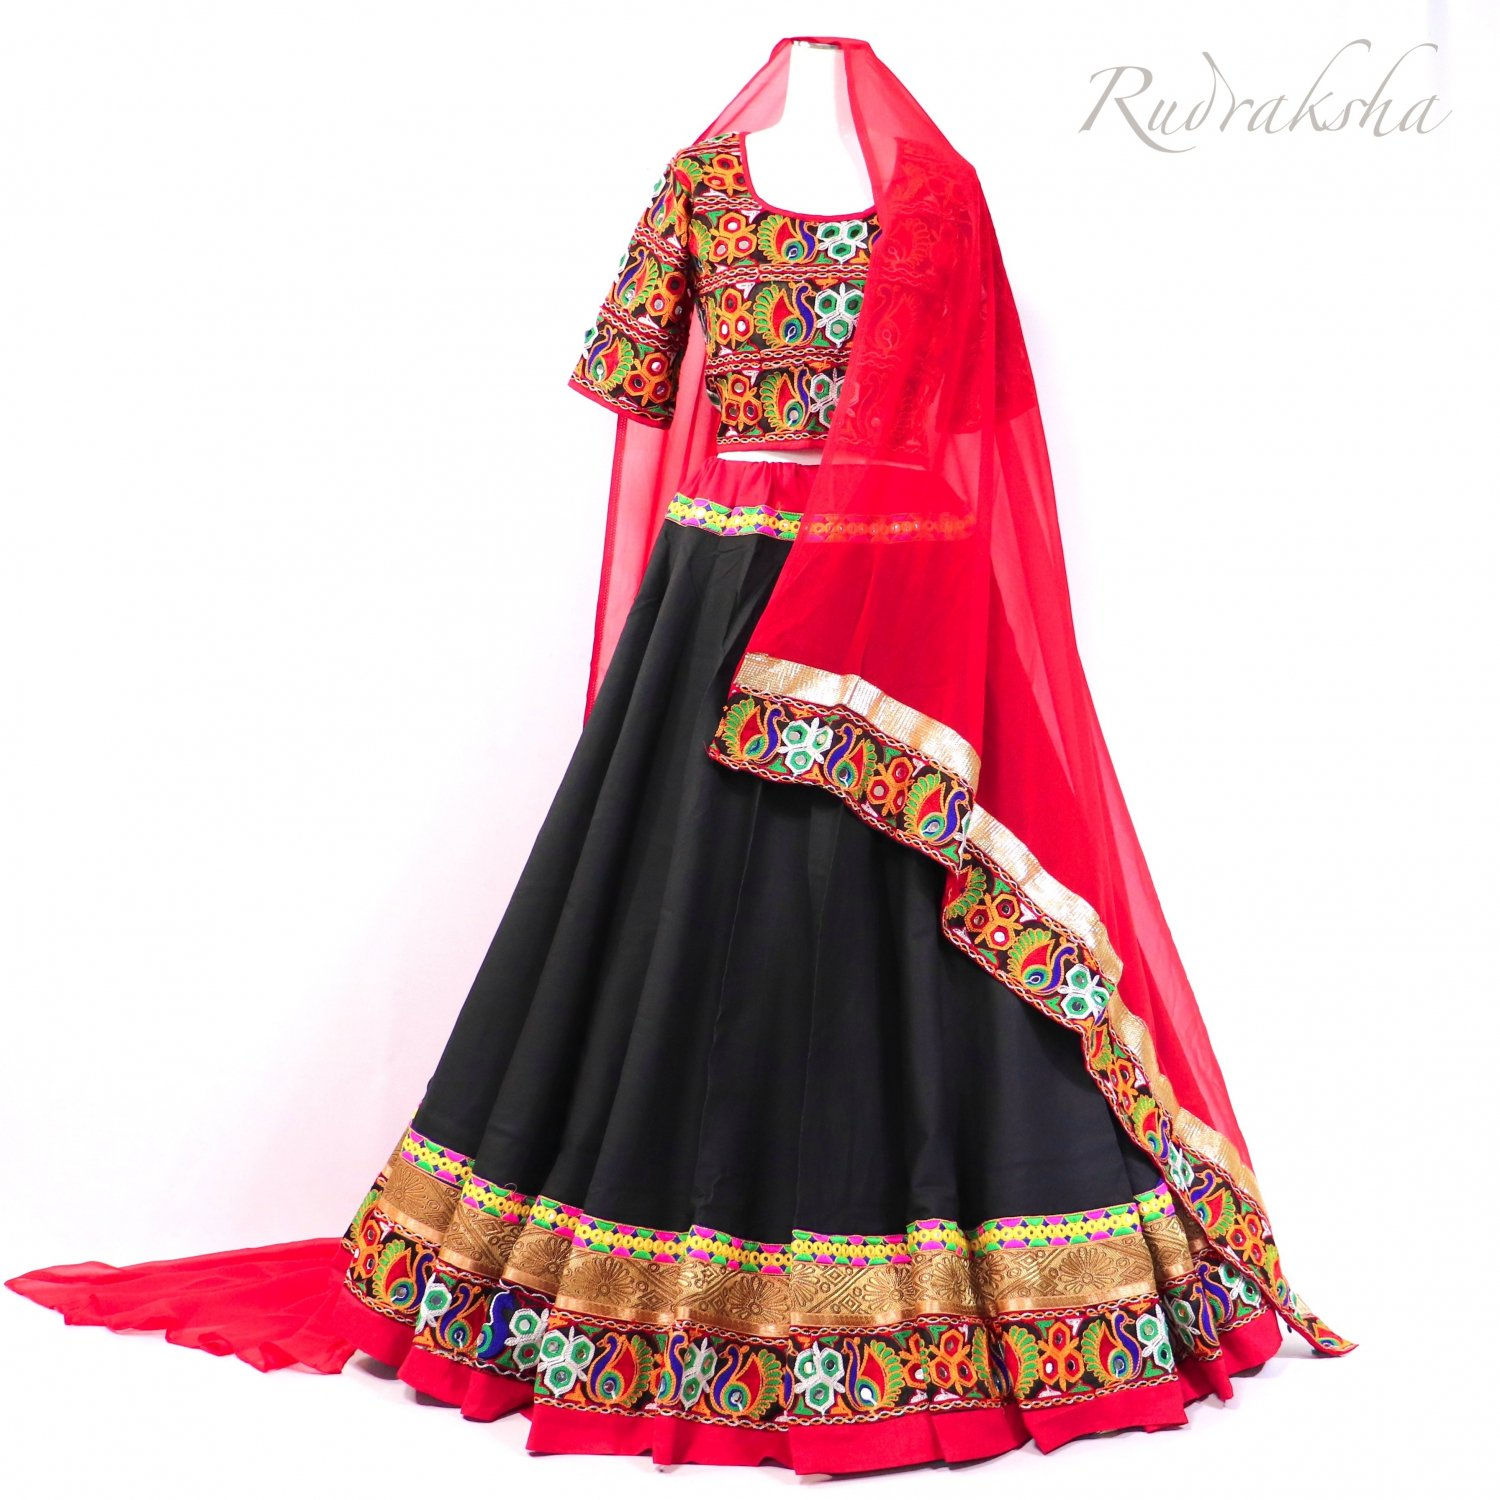 <img class='new_mark_img1' src='https://img.shop-pro.jp/img/new/icons1.gif' style='border:none;display:inline;margin:0px;padding:0px;width:auto;' />Rajasthani Lehenga <ブラックxレッド> ◇◆ インド民族衣装 ラジャスタンレヘンガ